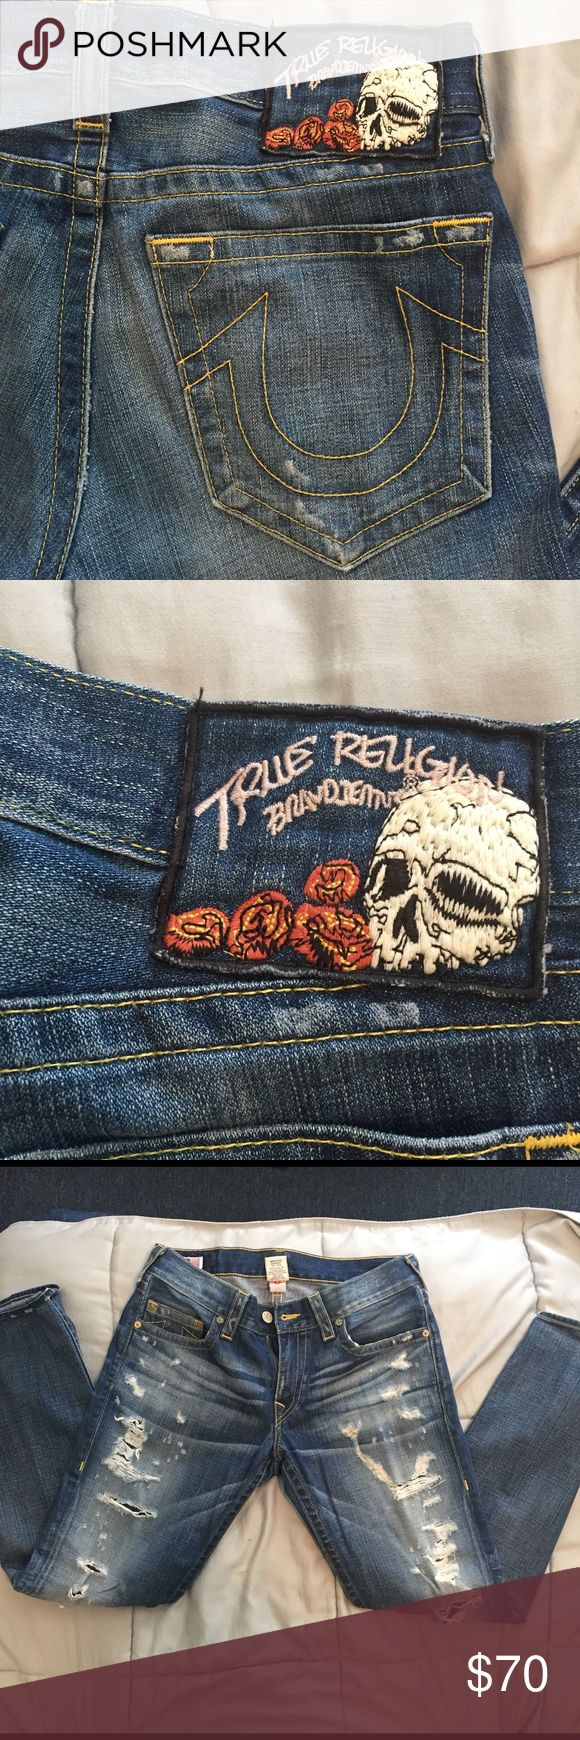 True Religion Ripped Jeans True Religion Ripped Jeans. Worn Once & Like New. 100% Authentic. Fast Shipping. True Religion Jeans Straight